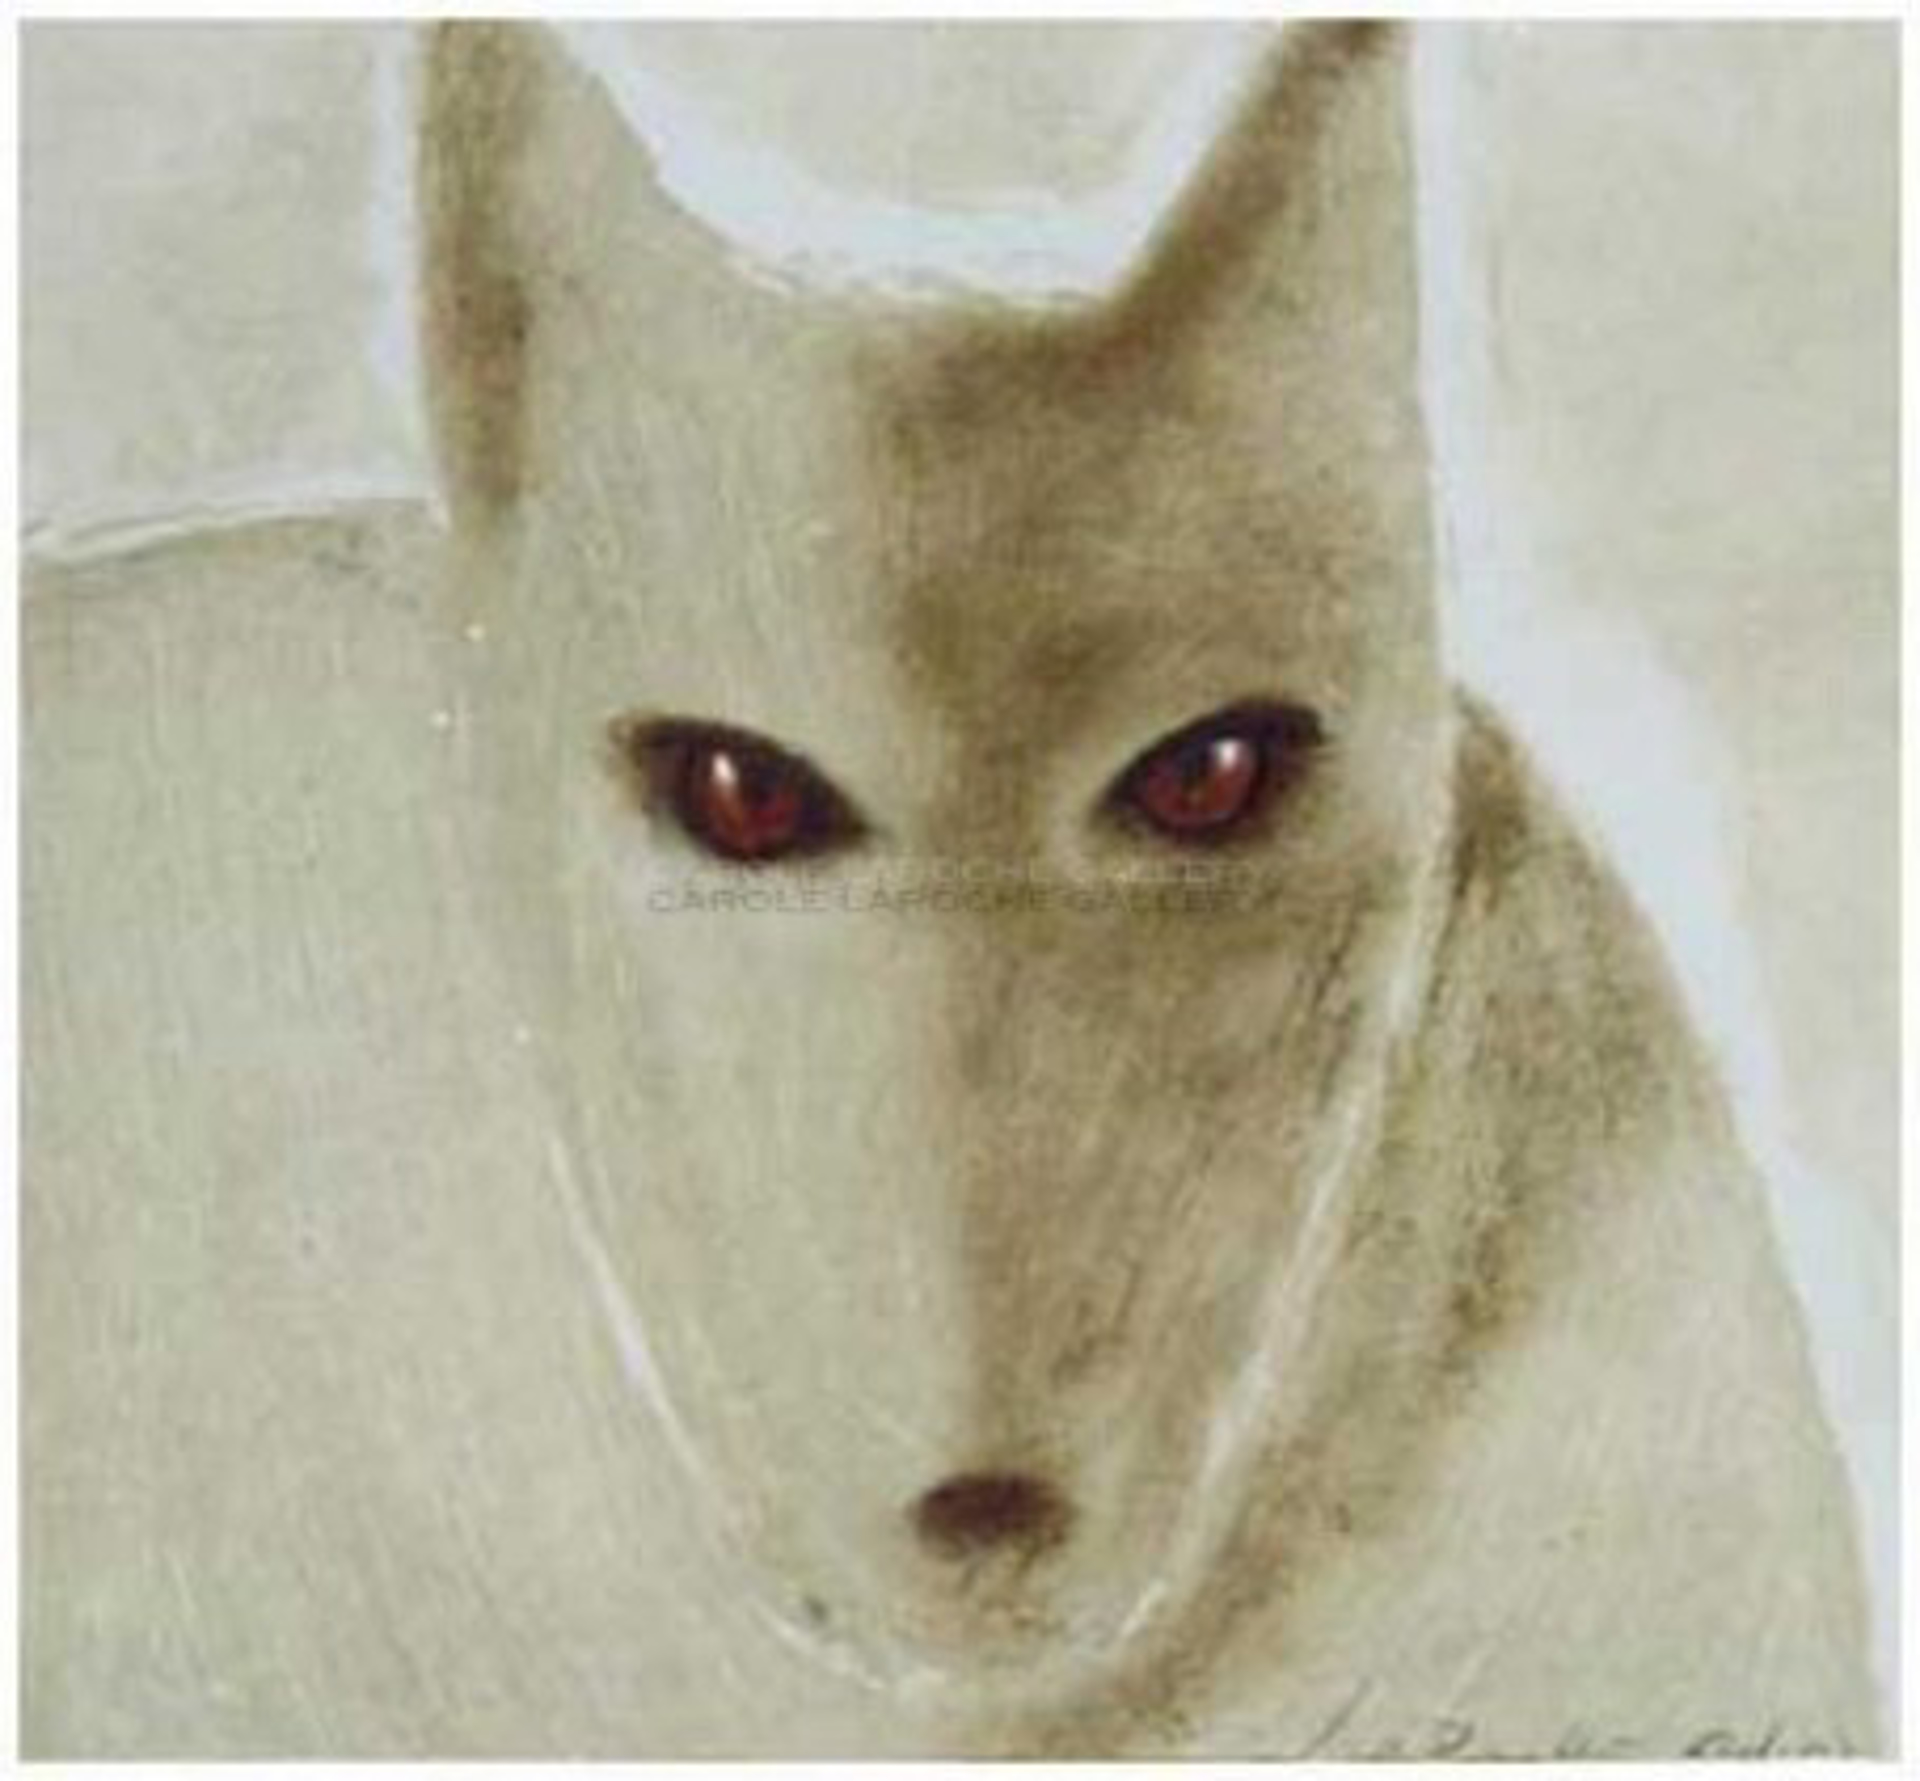 """GREY WOLF - limited edition giclee on paper w/frame size of 21""""x21"""" by Carole LaRoche"""